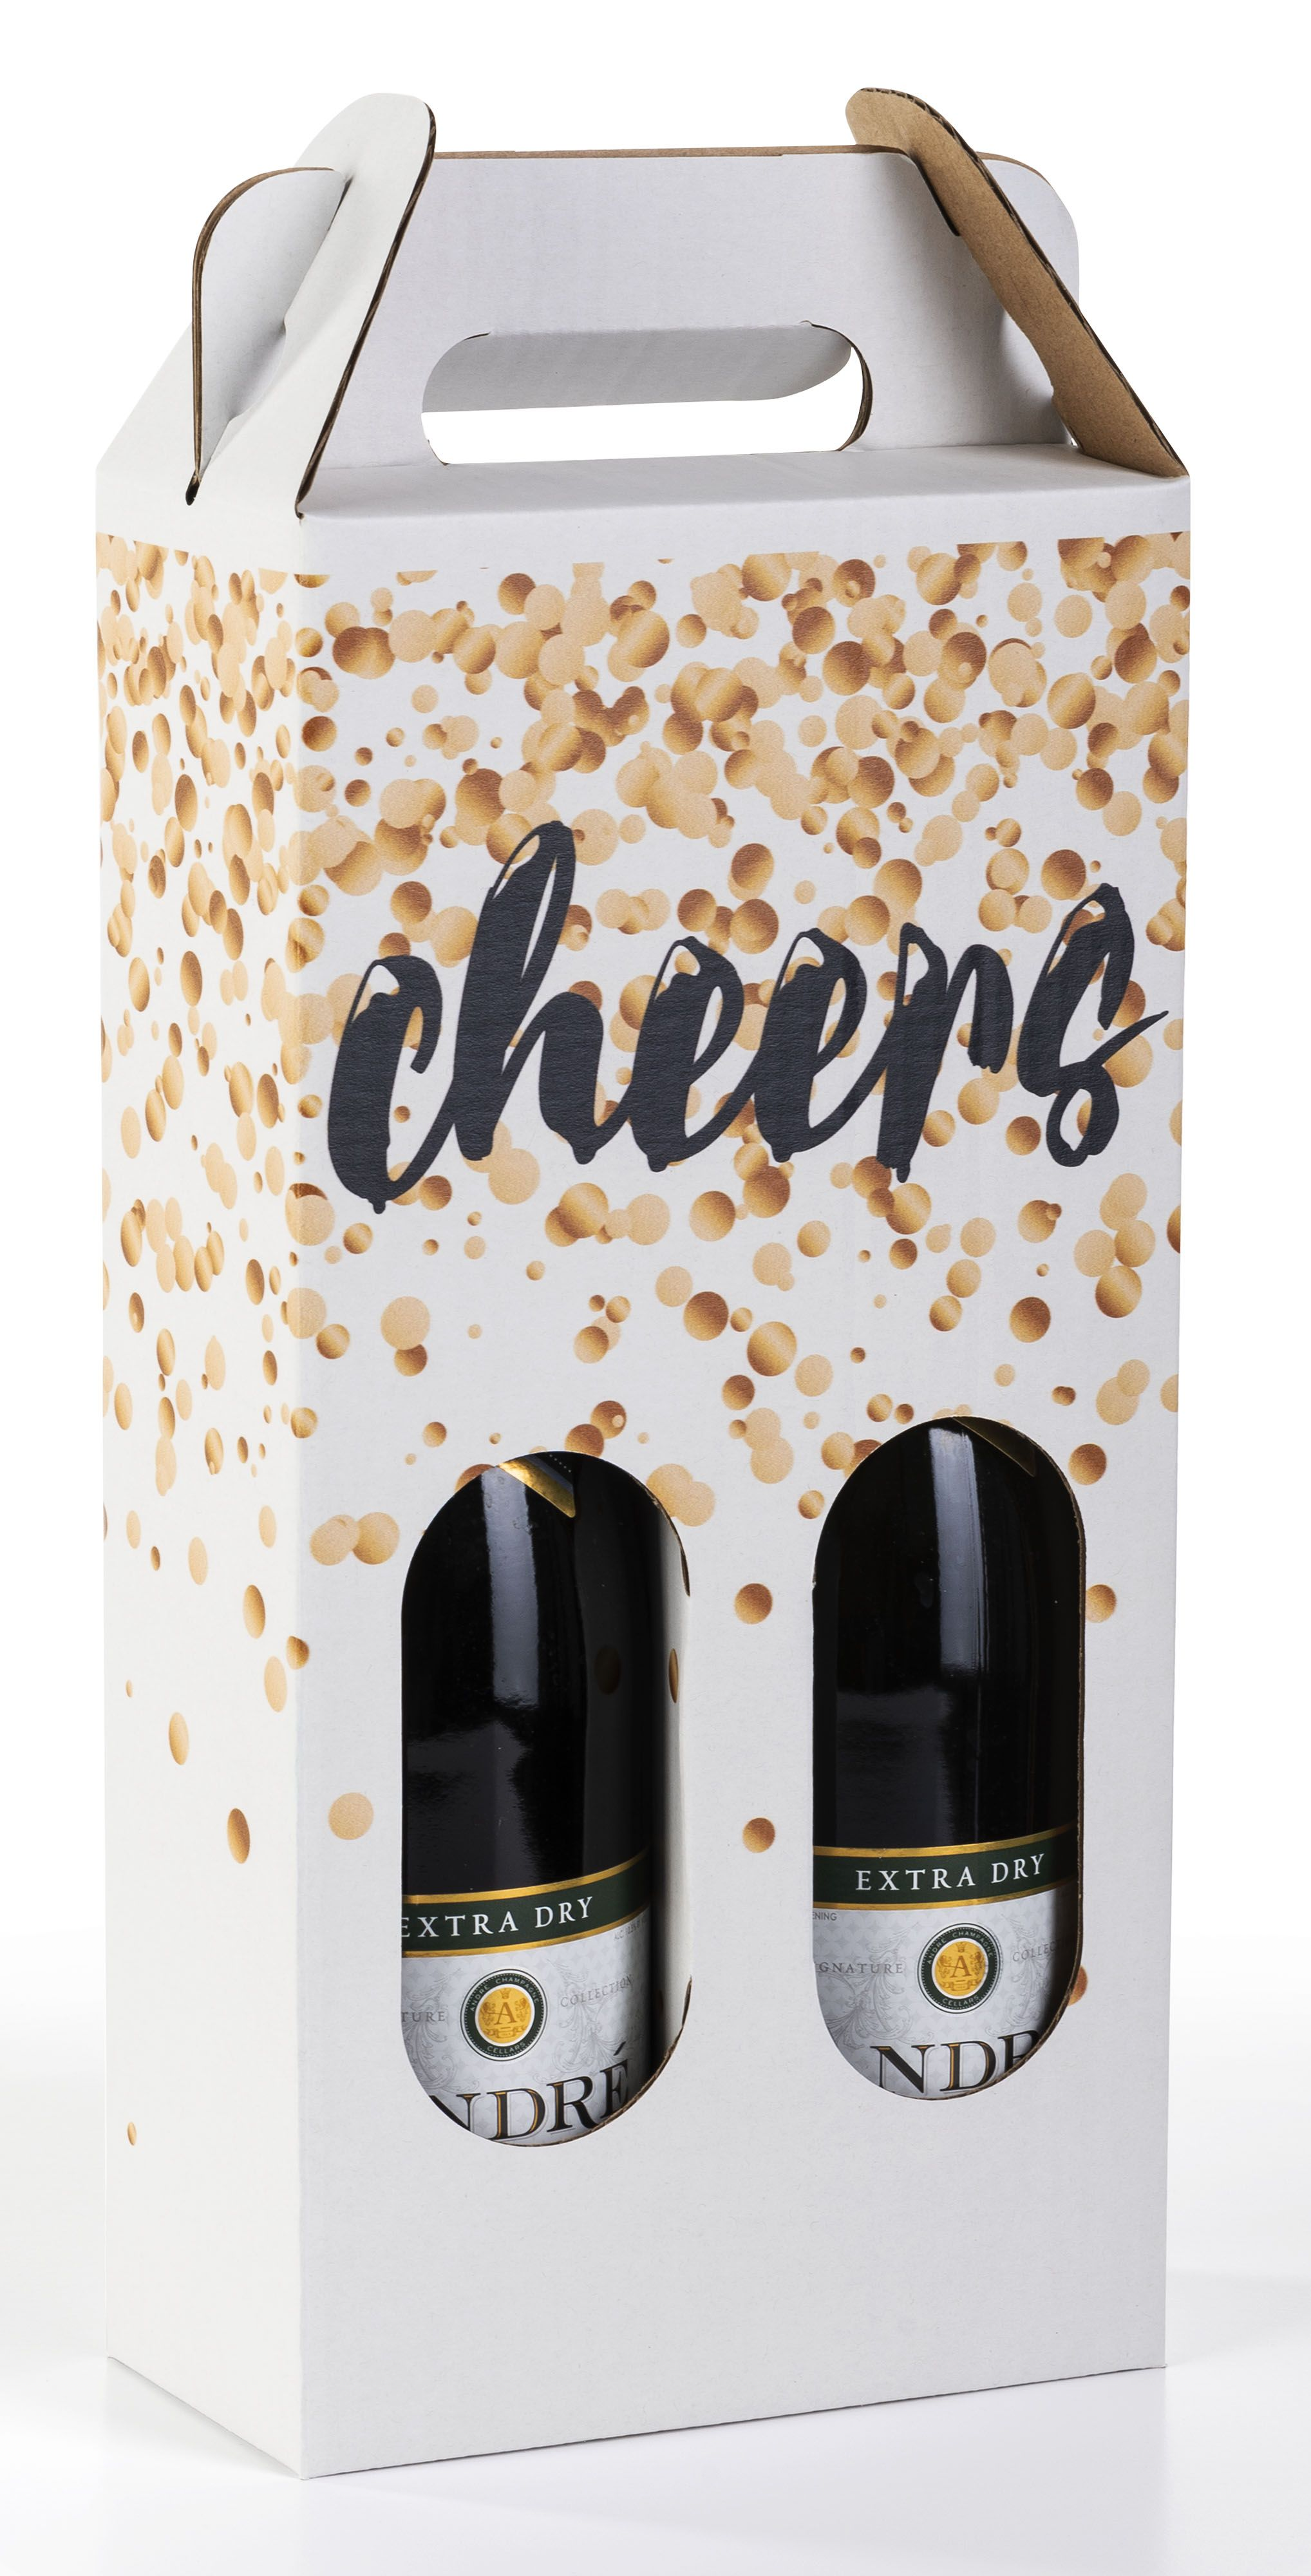 Personalized Wine Gift Boxes For Party Favors And Employee Gifts Personalized Wine Gift Wine Carrier Wine Gift Boxes